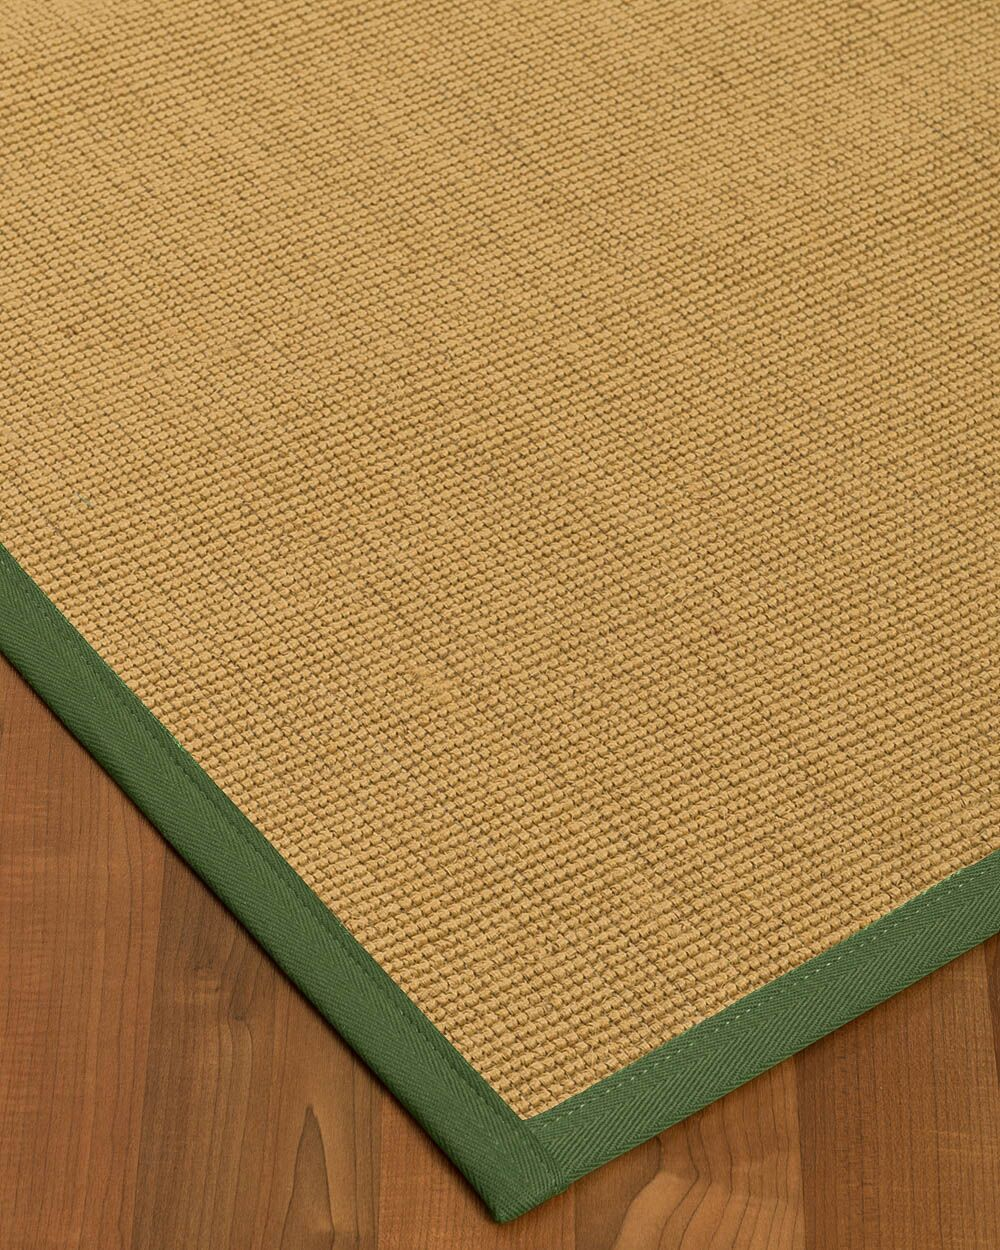 Lanie Hand-Woven Beige Area Rug Rug Size: Rectangle 8' X 10'